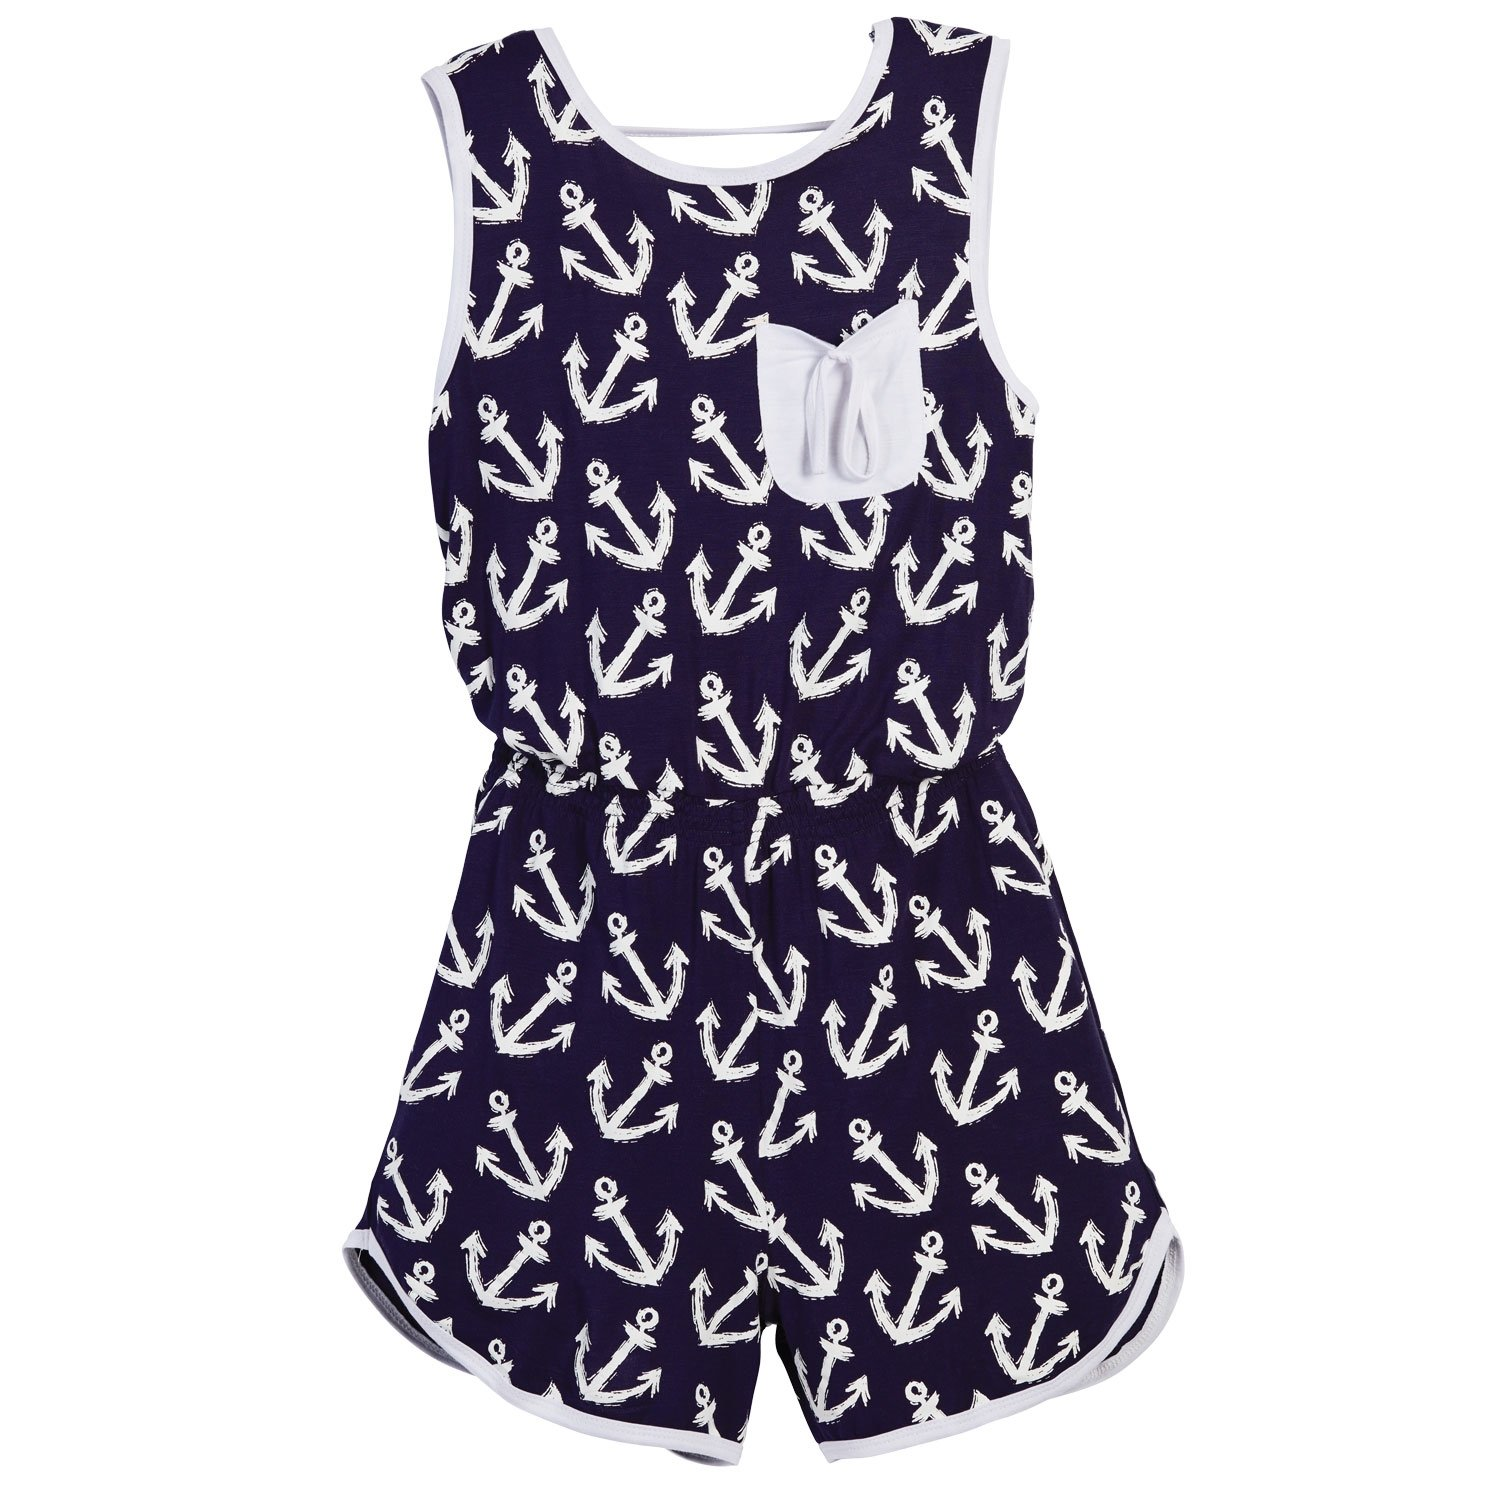 Beachcombers Girl's Tops Rayon/Spandex Anchor Romper Navy/White Small